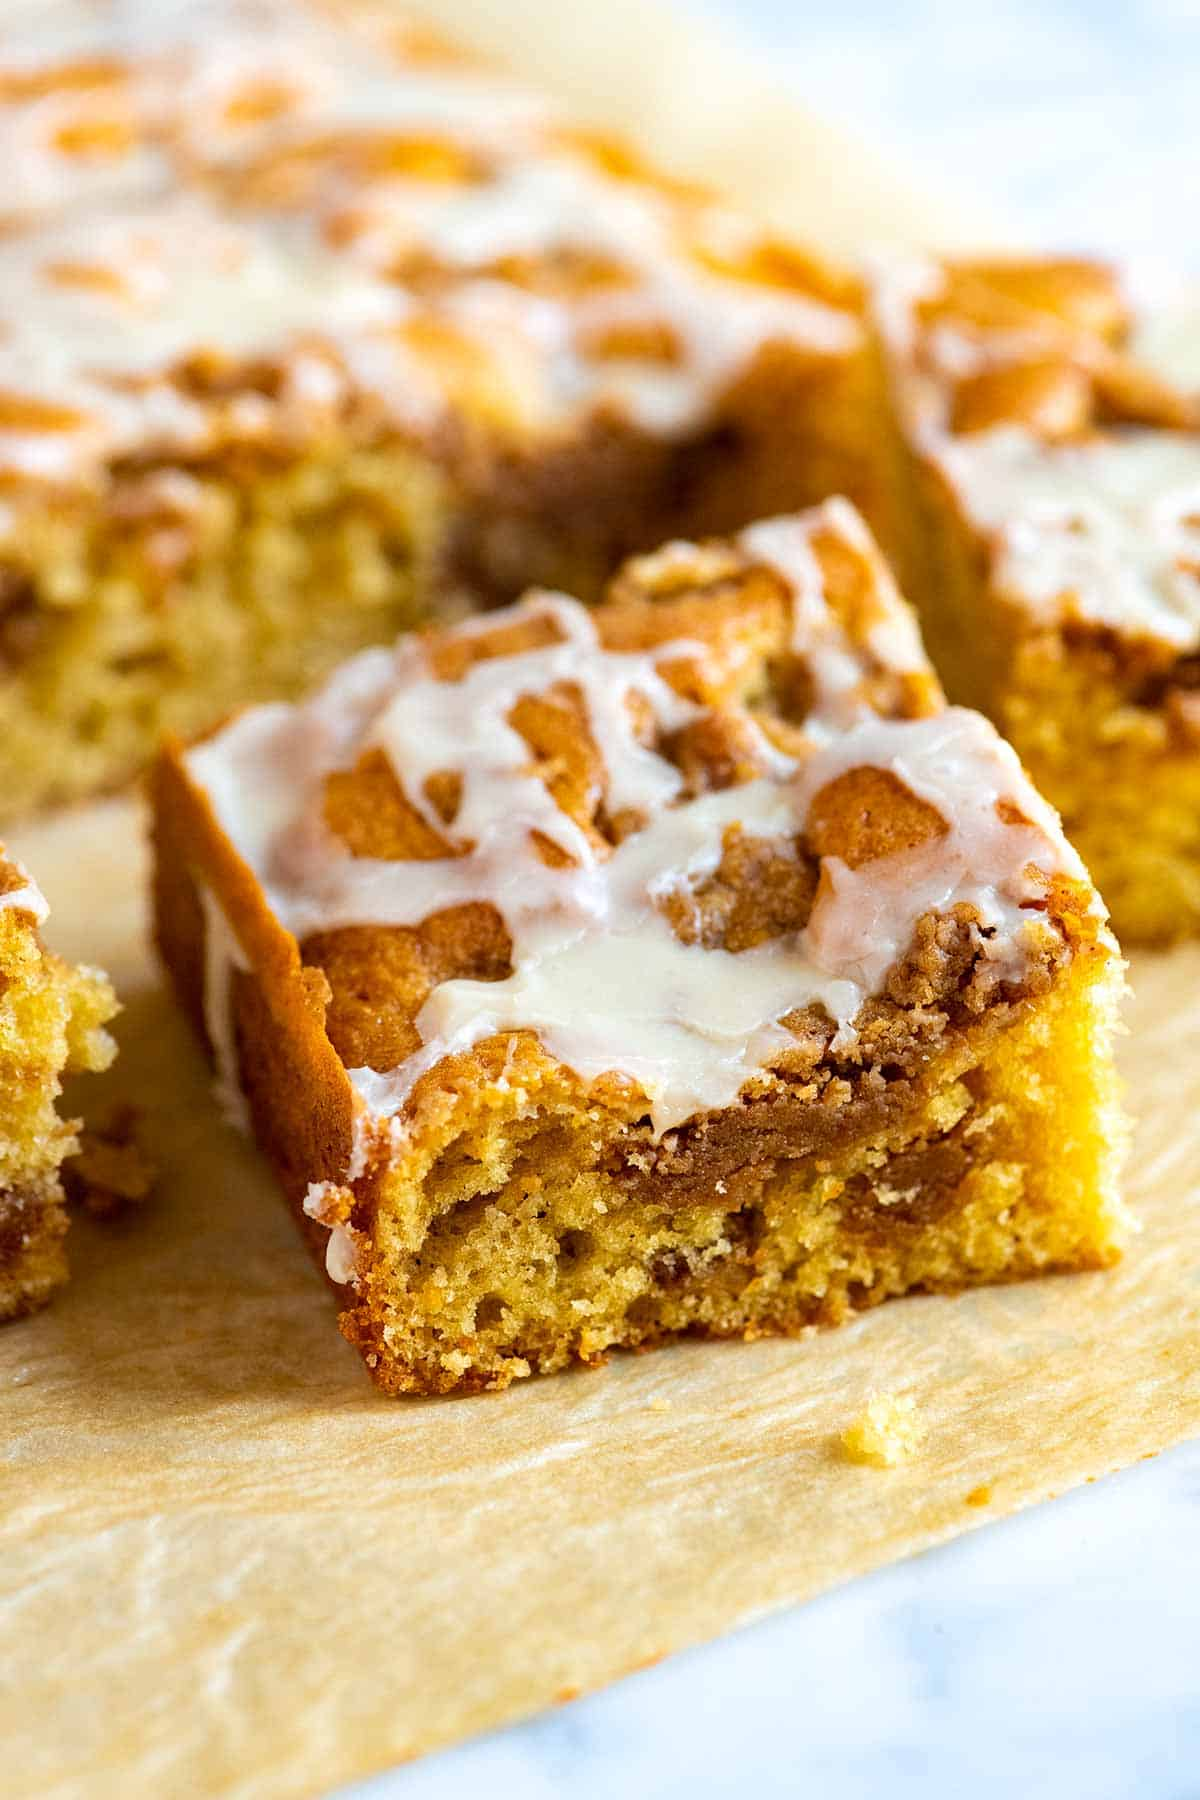 Coffee Cake with Brown Sugar Streusel